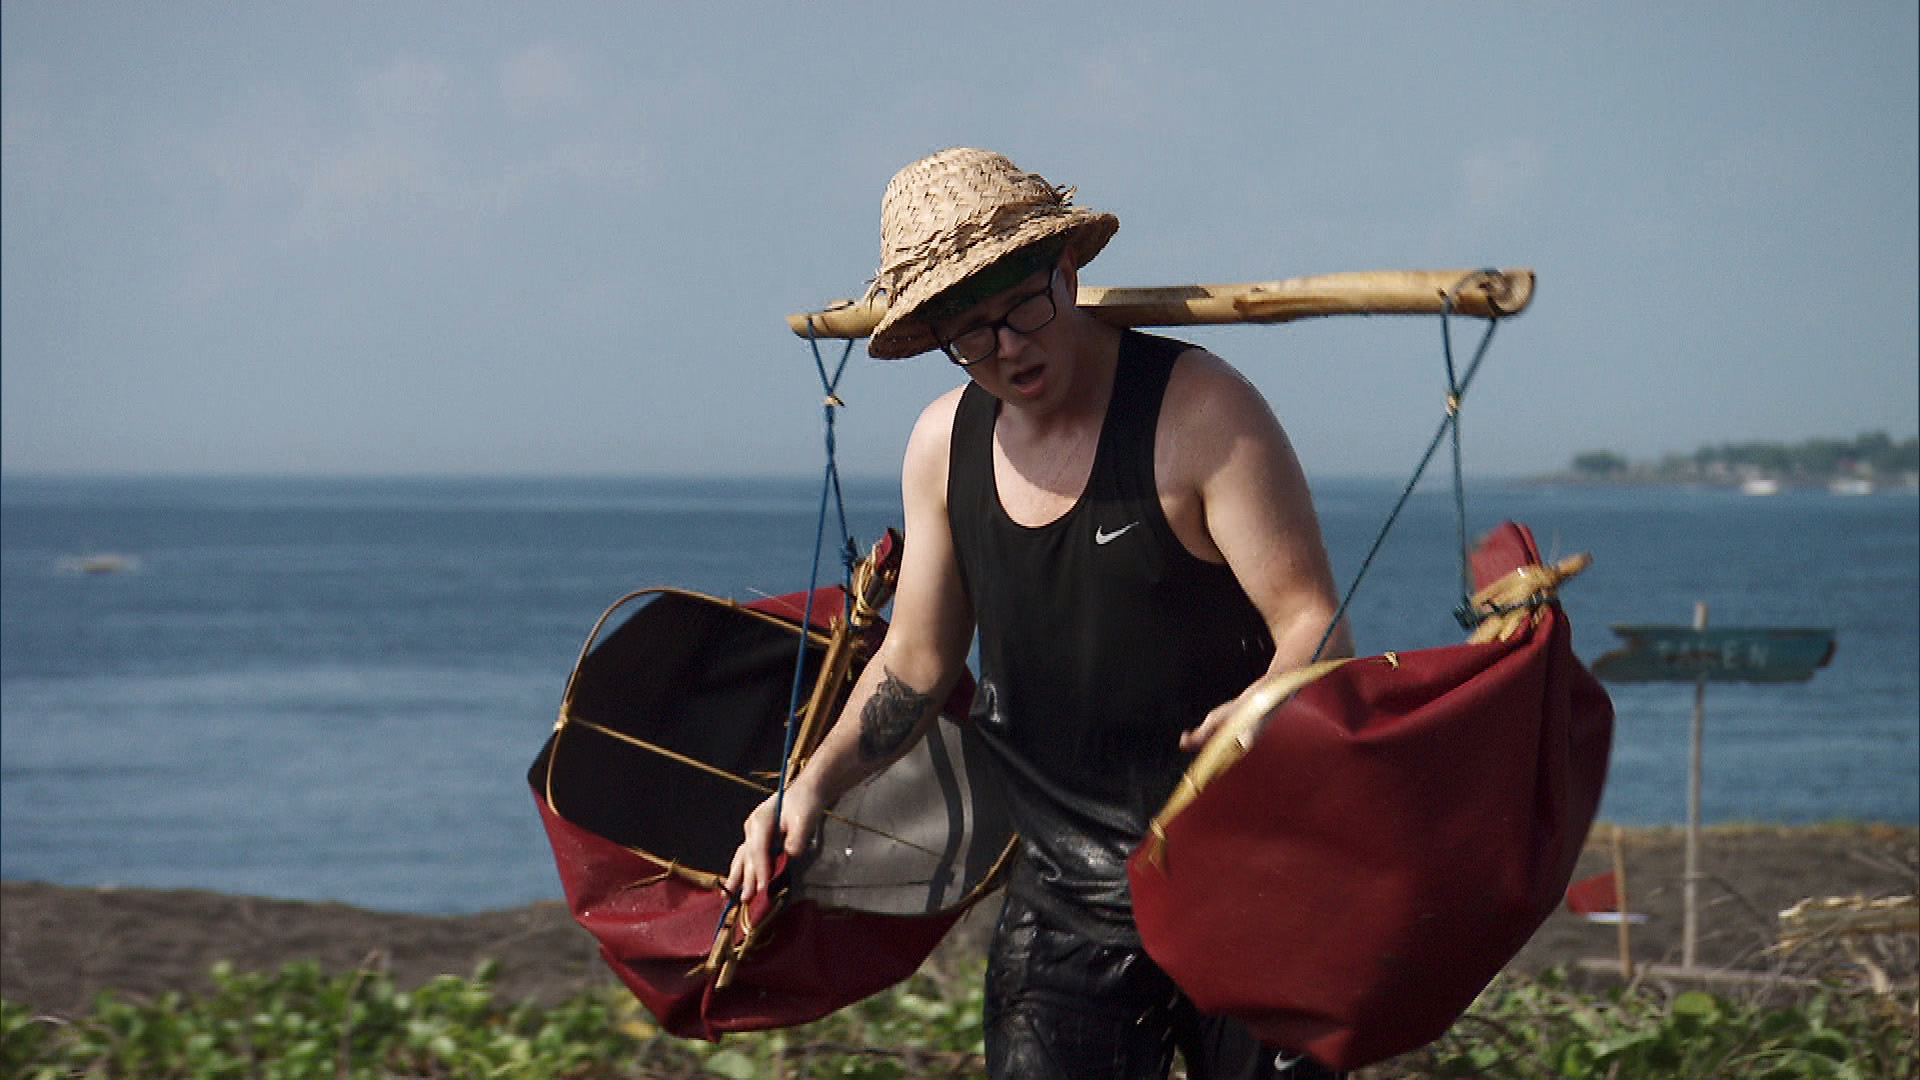 Tyler carries large loads of water from the sea to the sand.